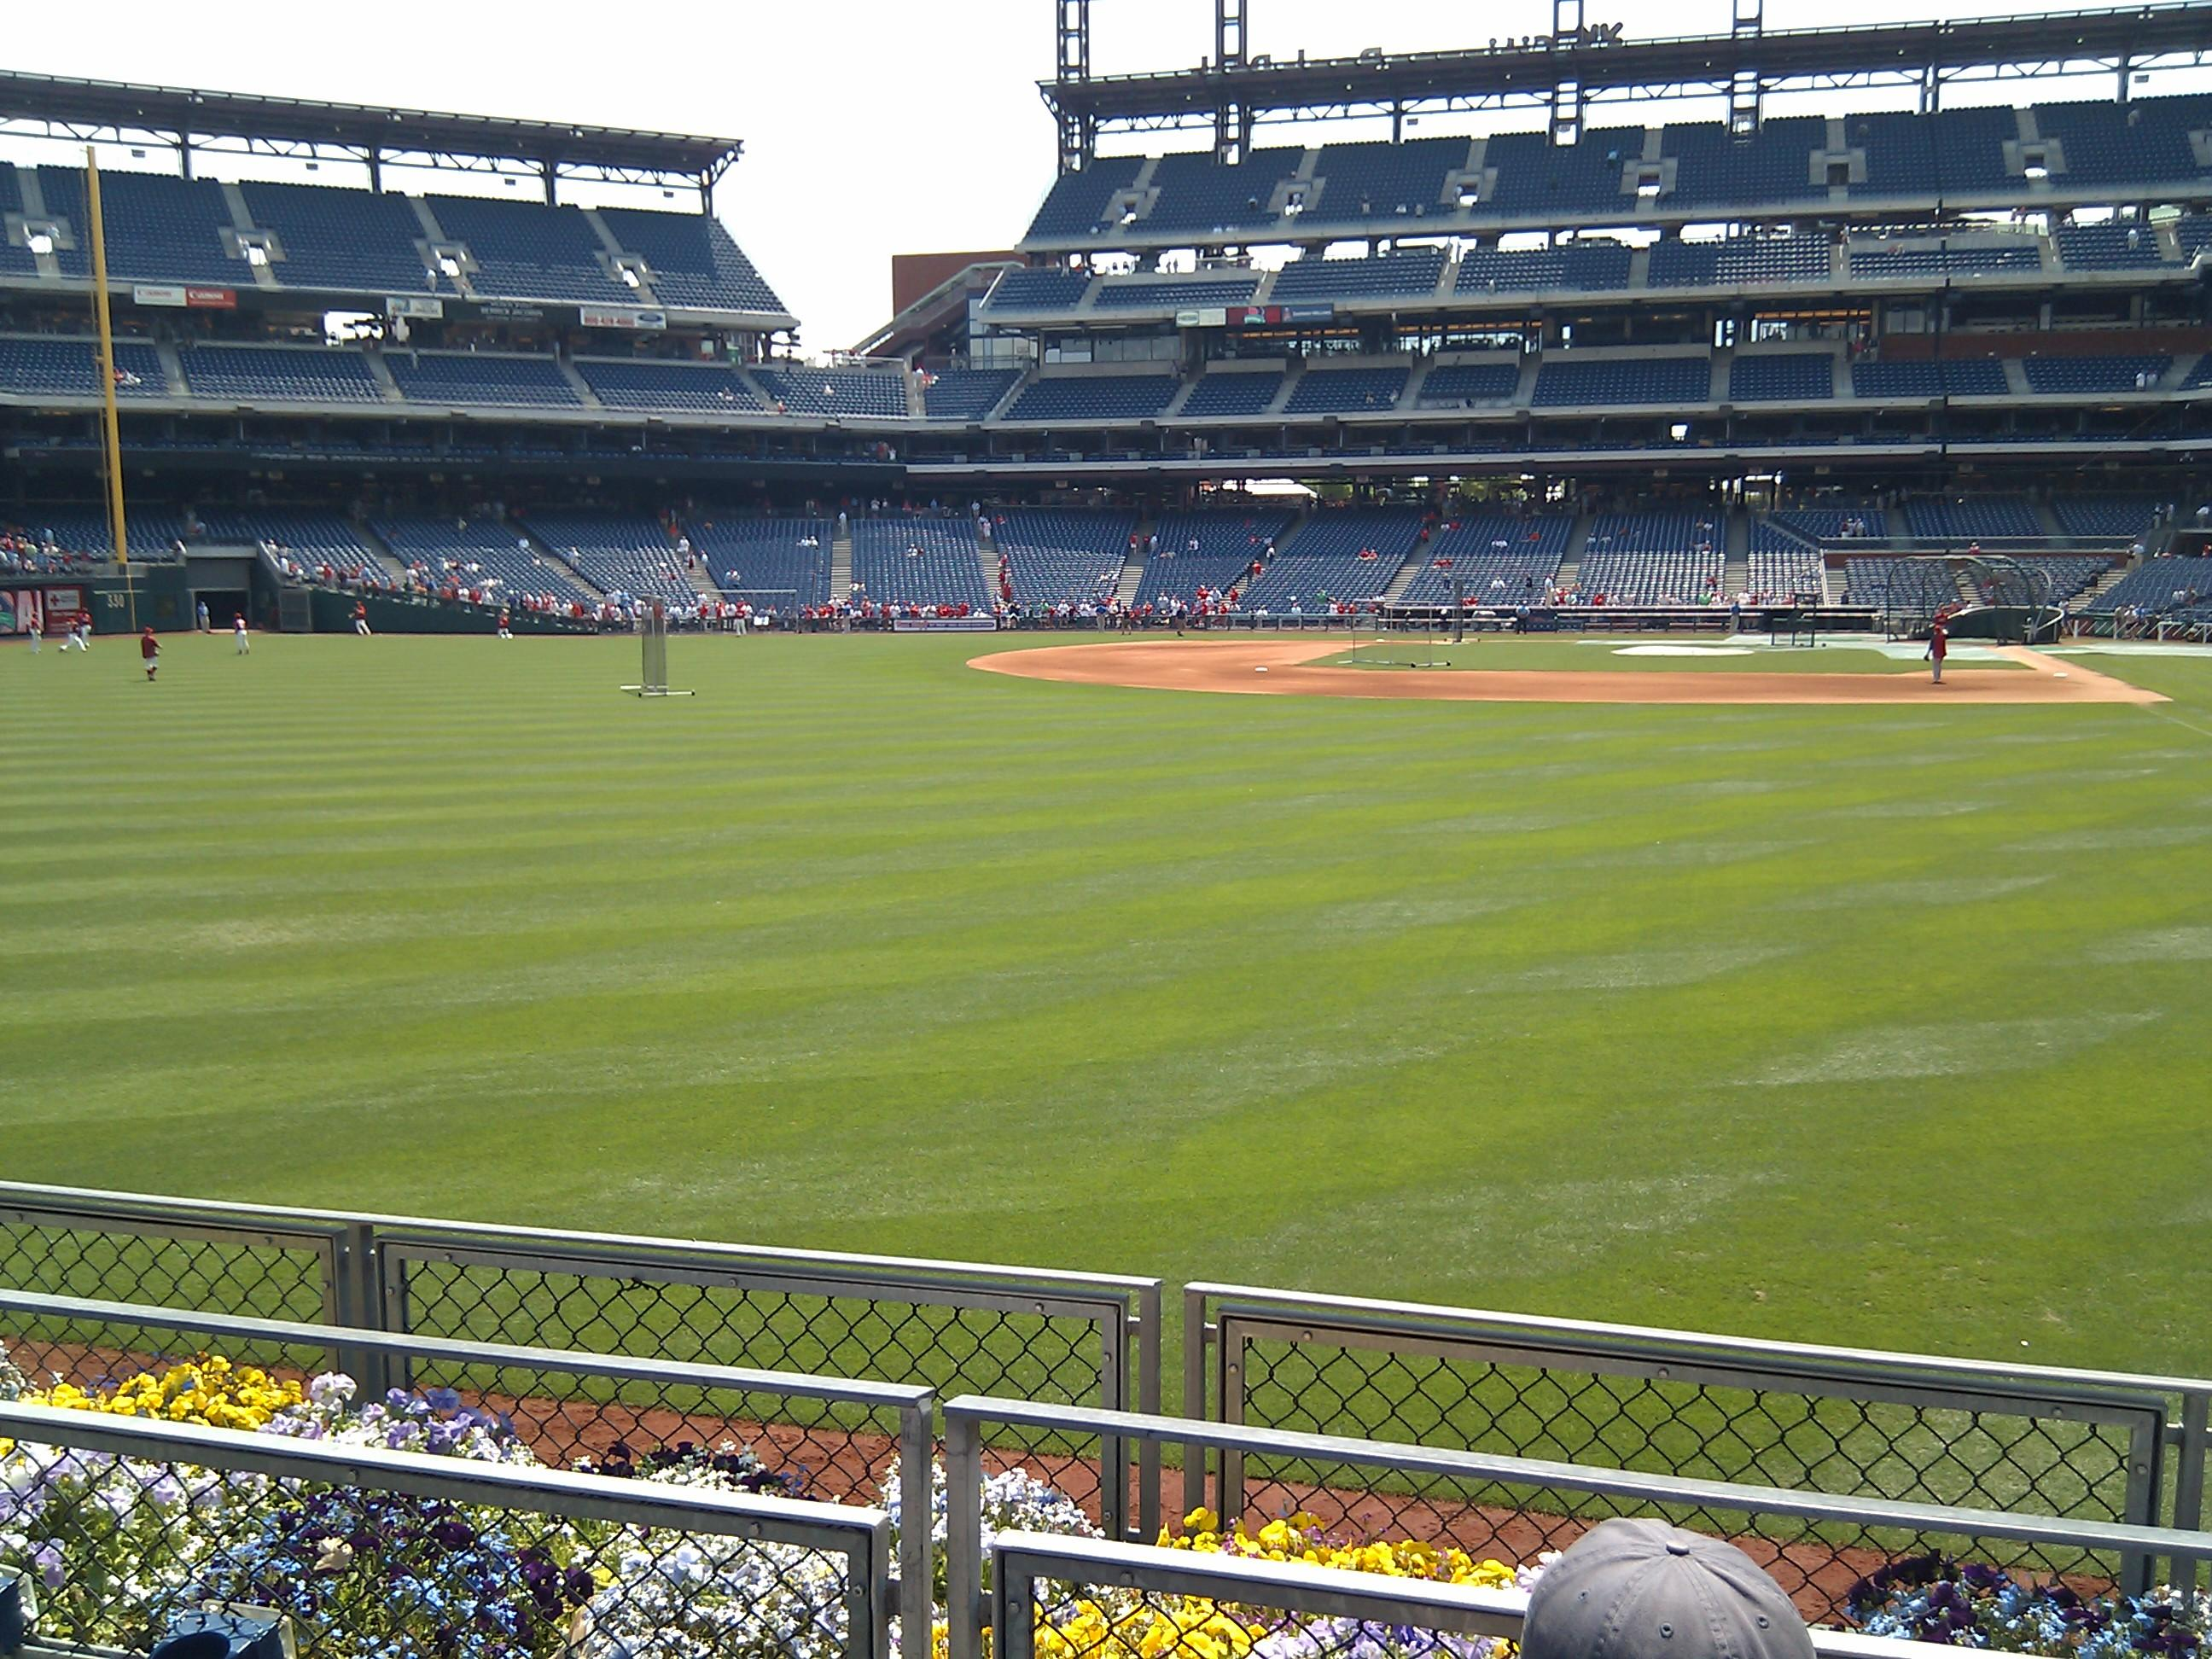 Citizens Bank Park Section 142 Row 3 Seat 4